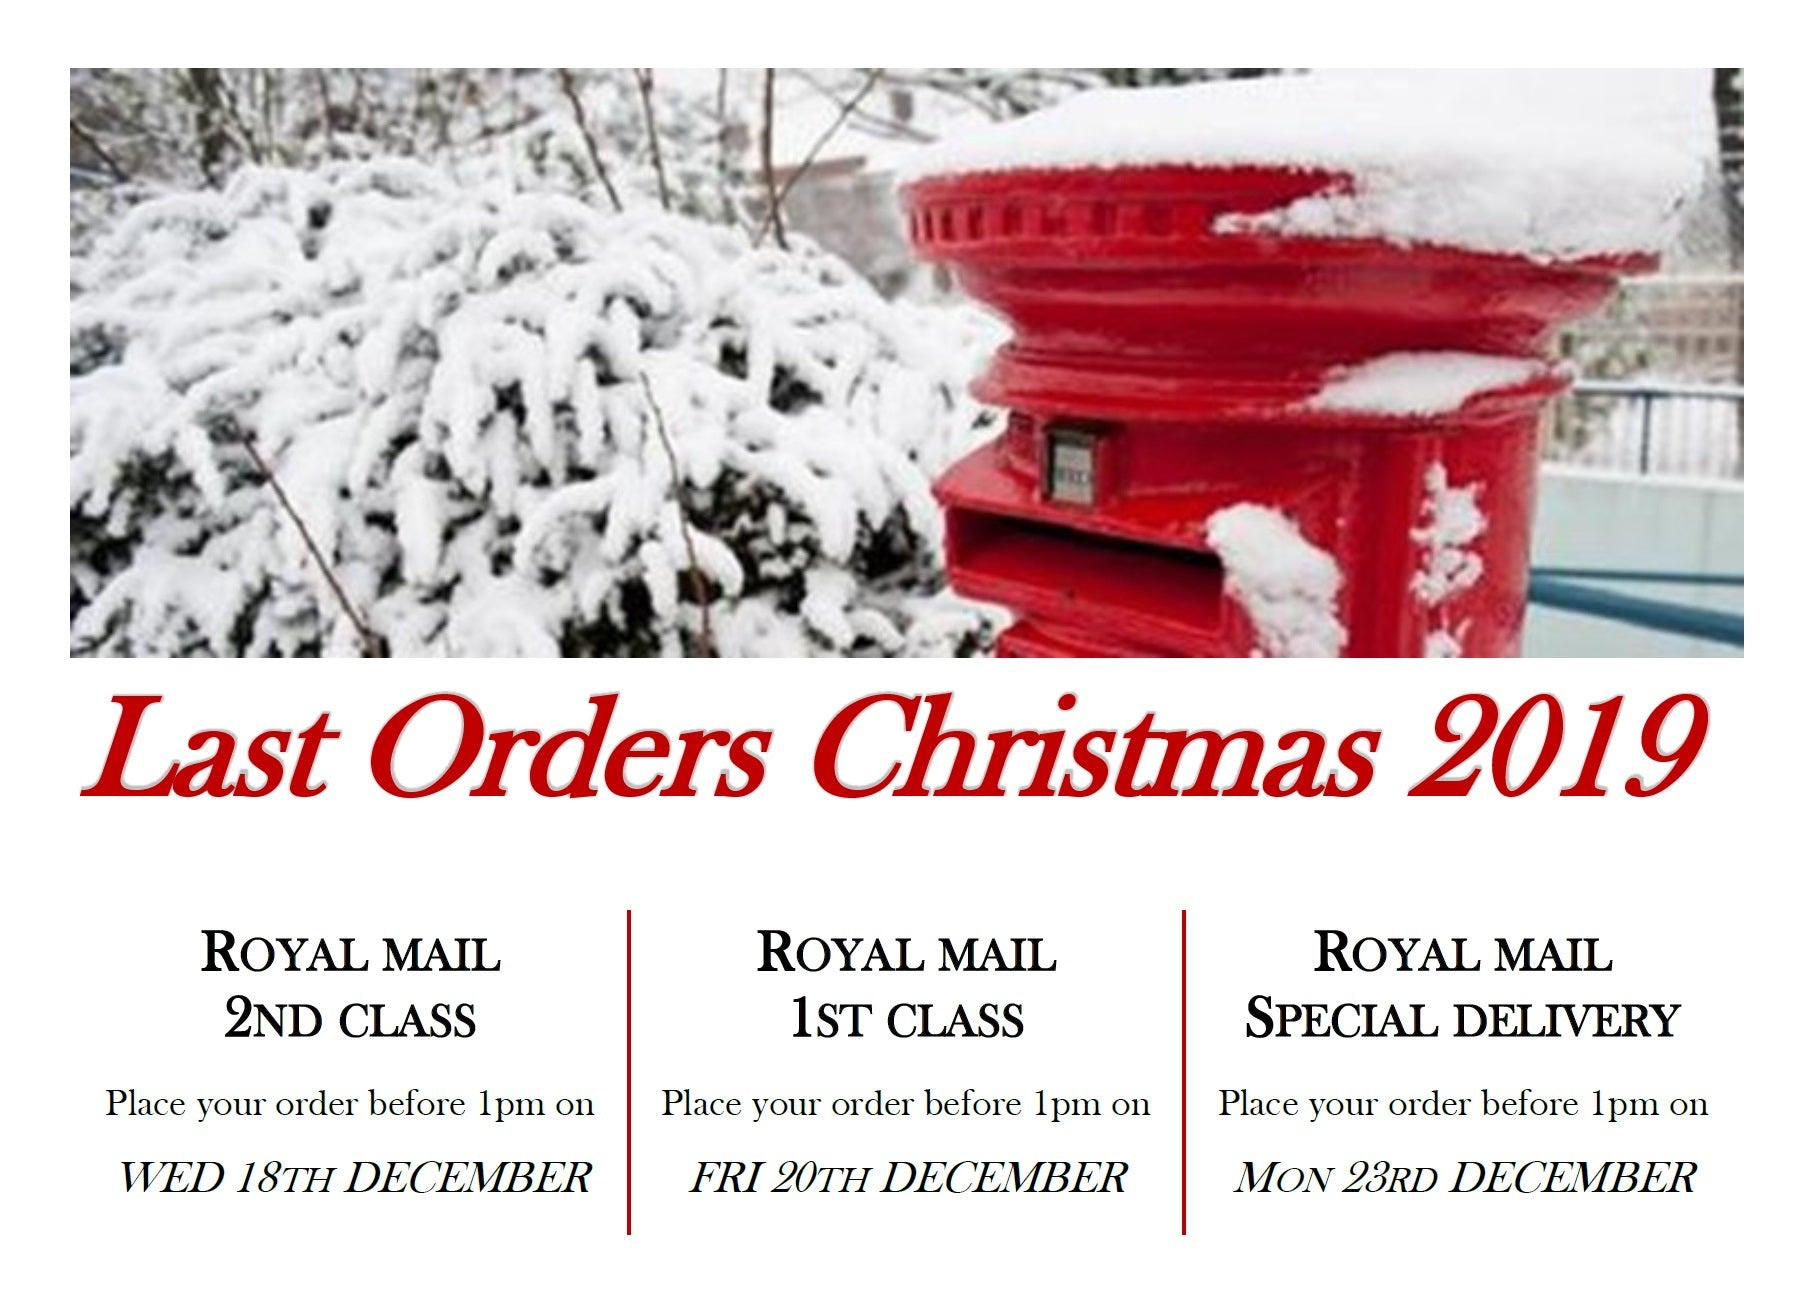 last orders for Christmas 2019